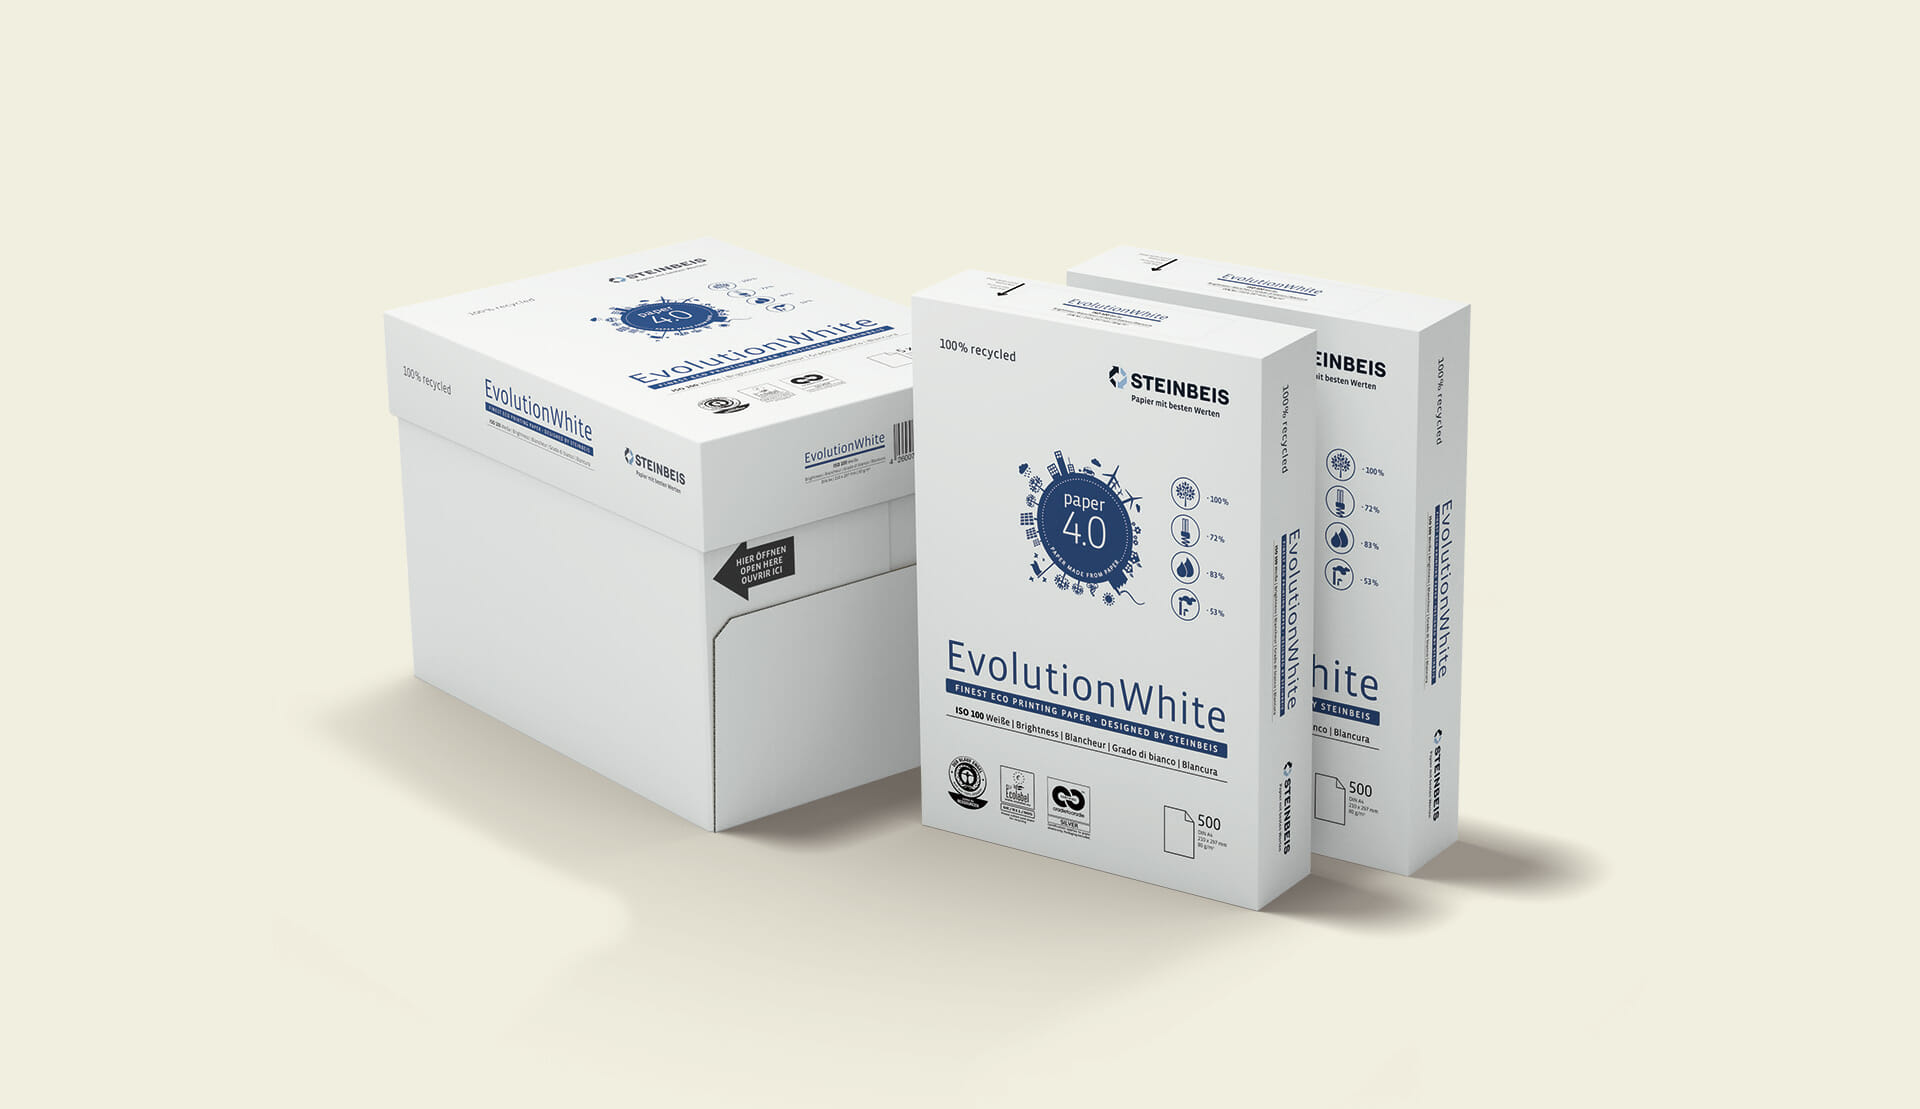 Steinbeis Papier Packaging Redesign 2015 Box und Ries